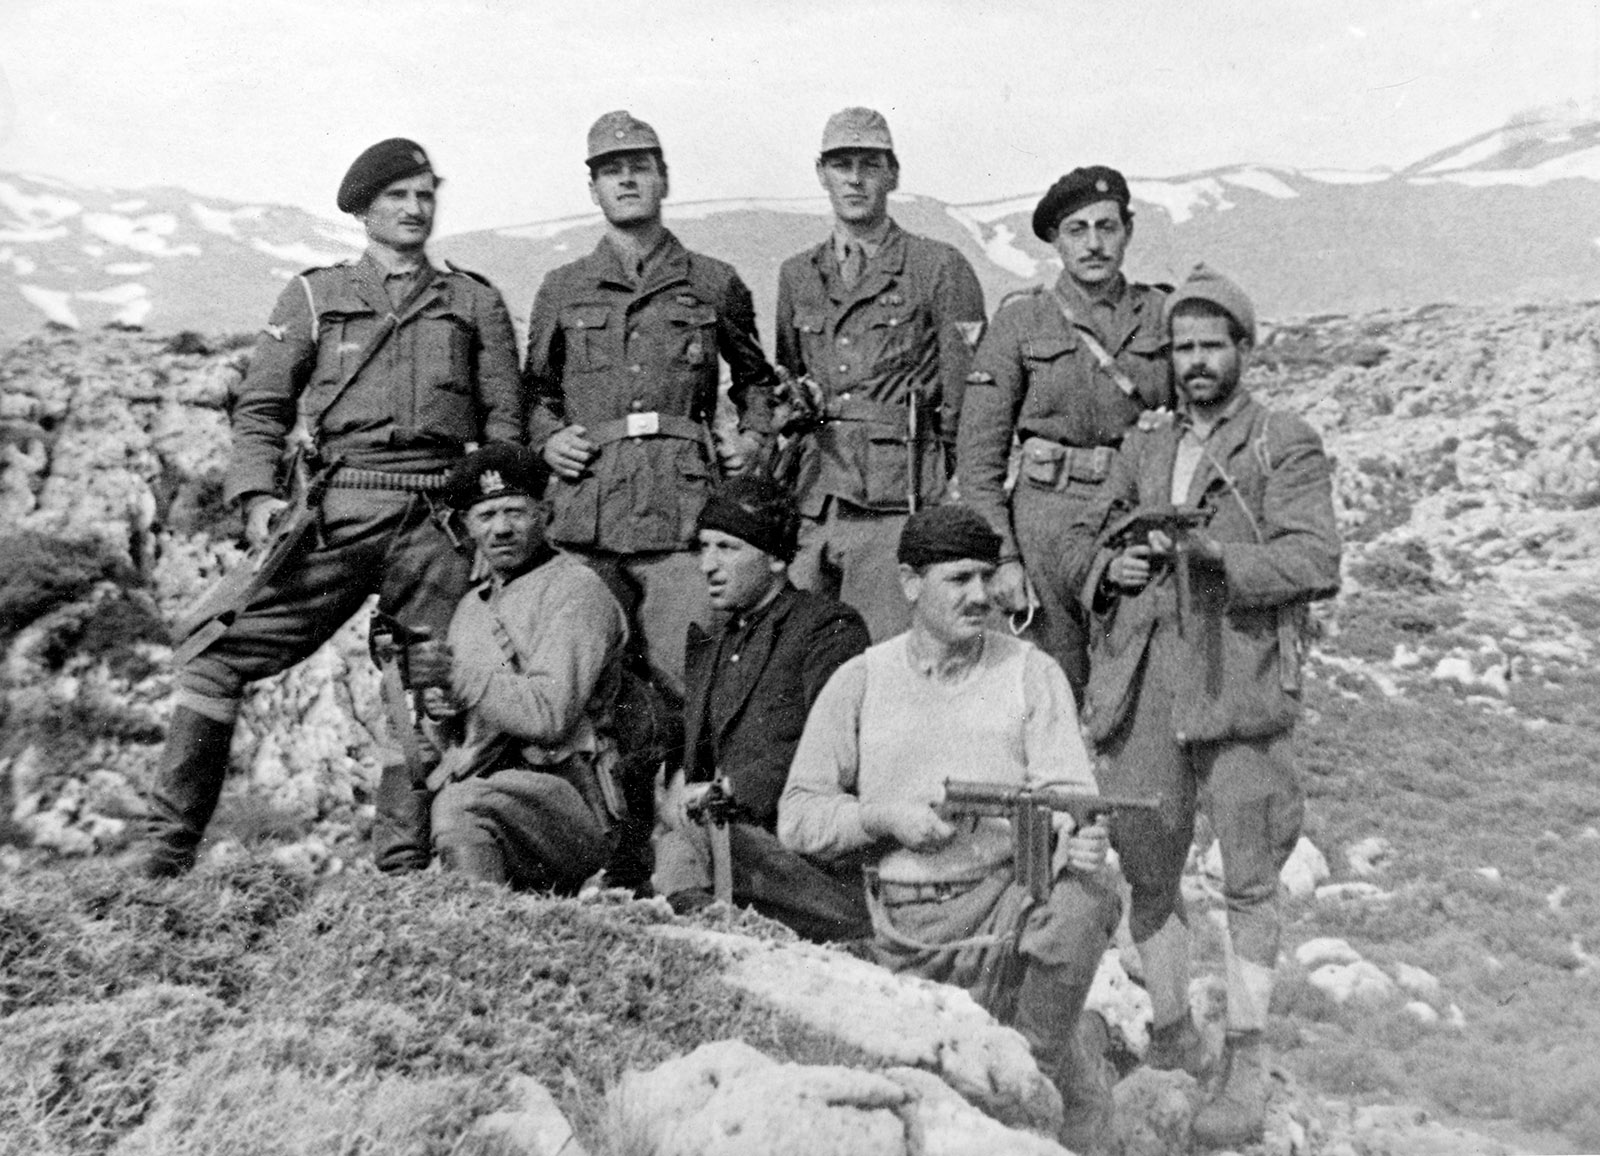 Patrick Leigh Fermor and William Stanley Moss with other members of the group that abducted the German general Heinrich Kreipe, Crete